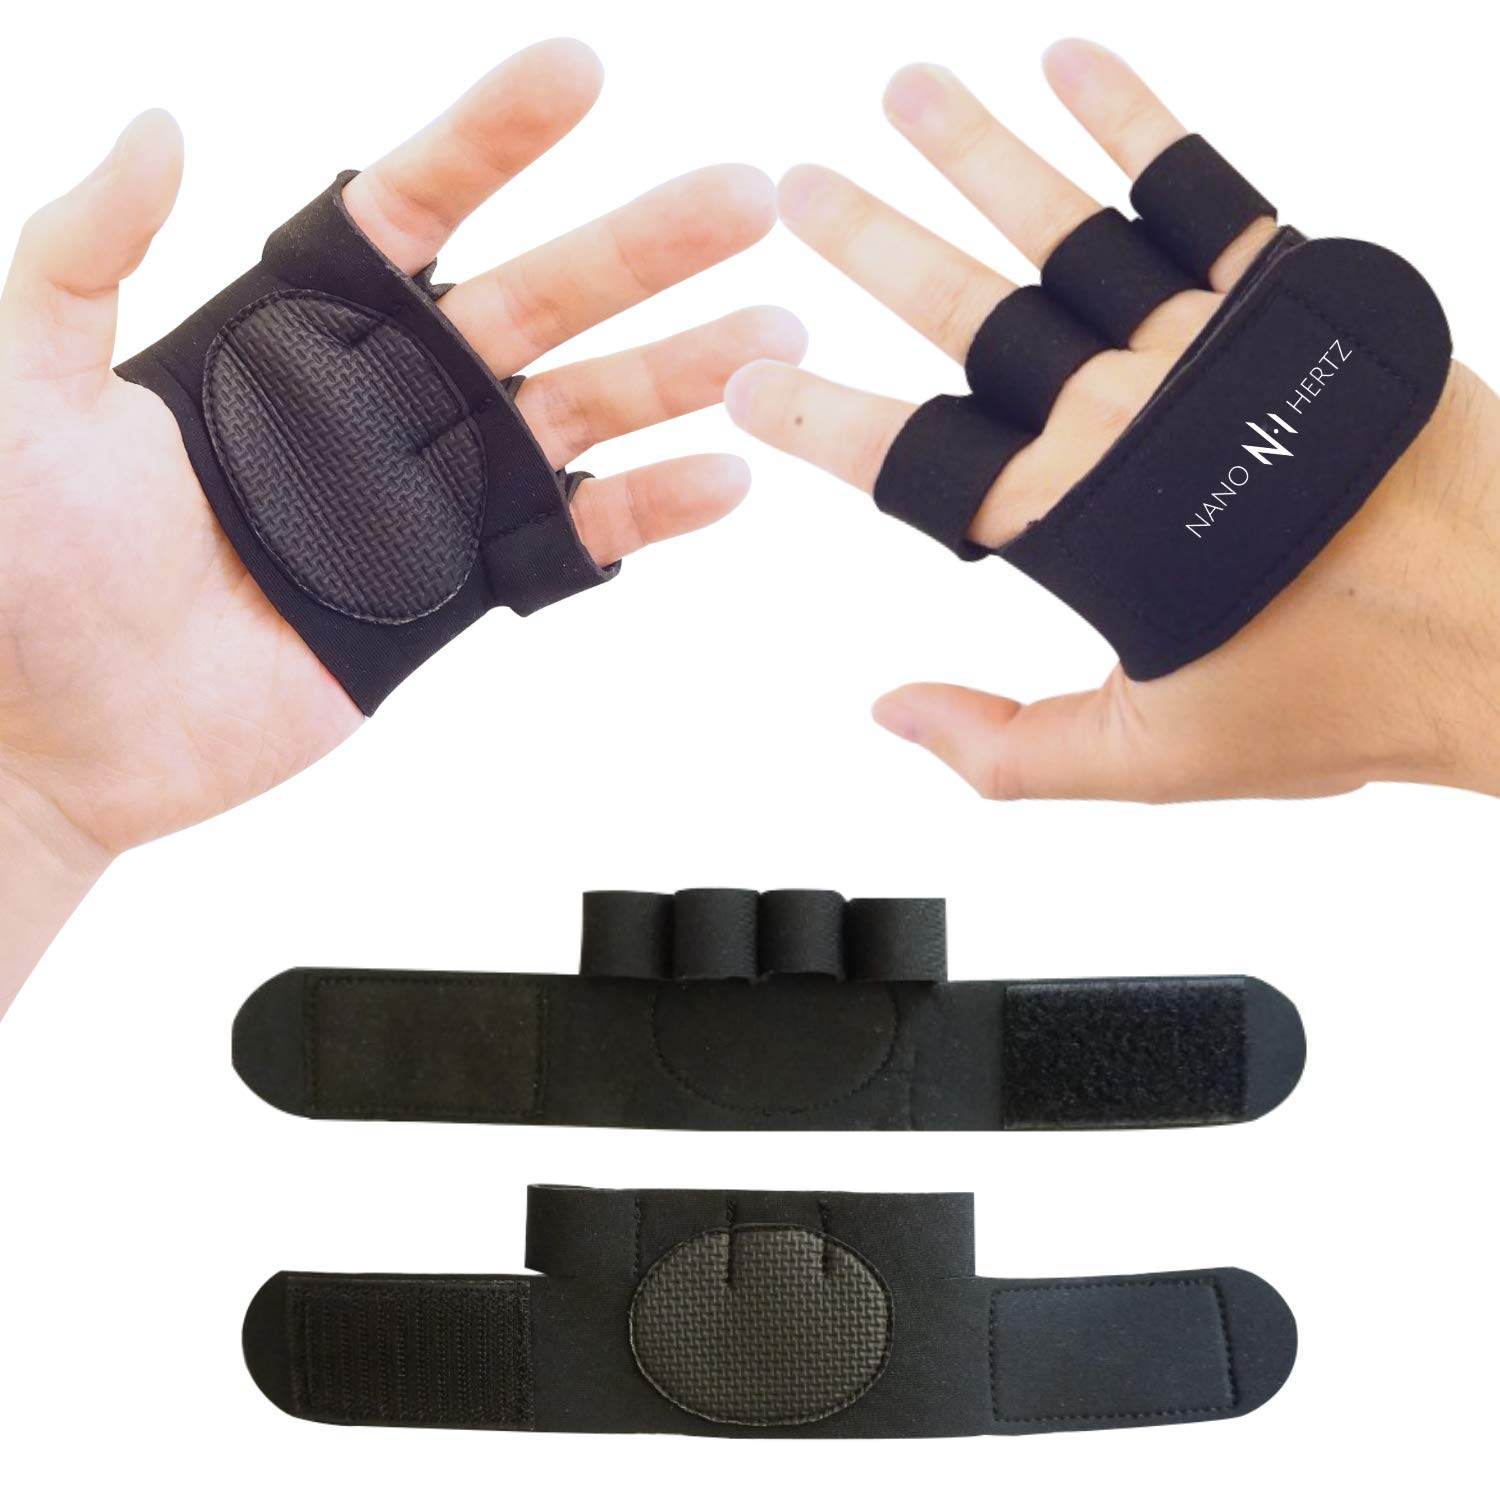 Weight Lifting Callus Guard Accessories Cross Training Power Lifting